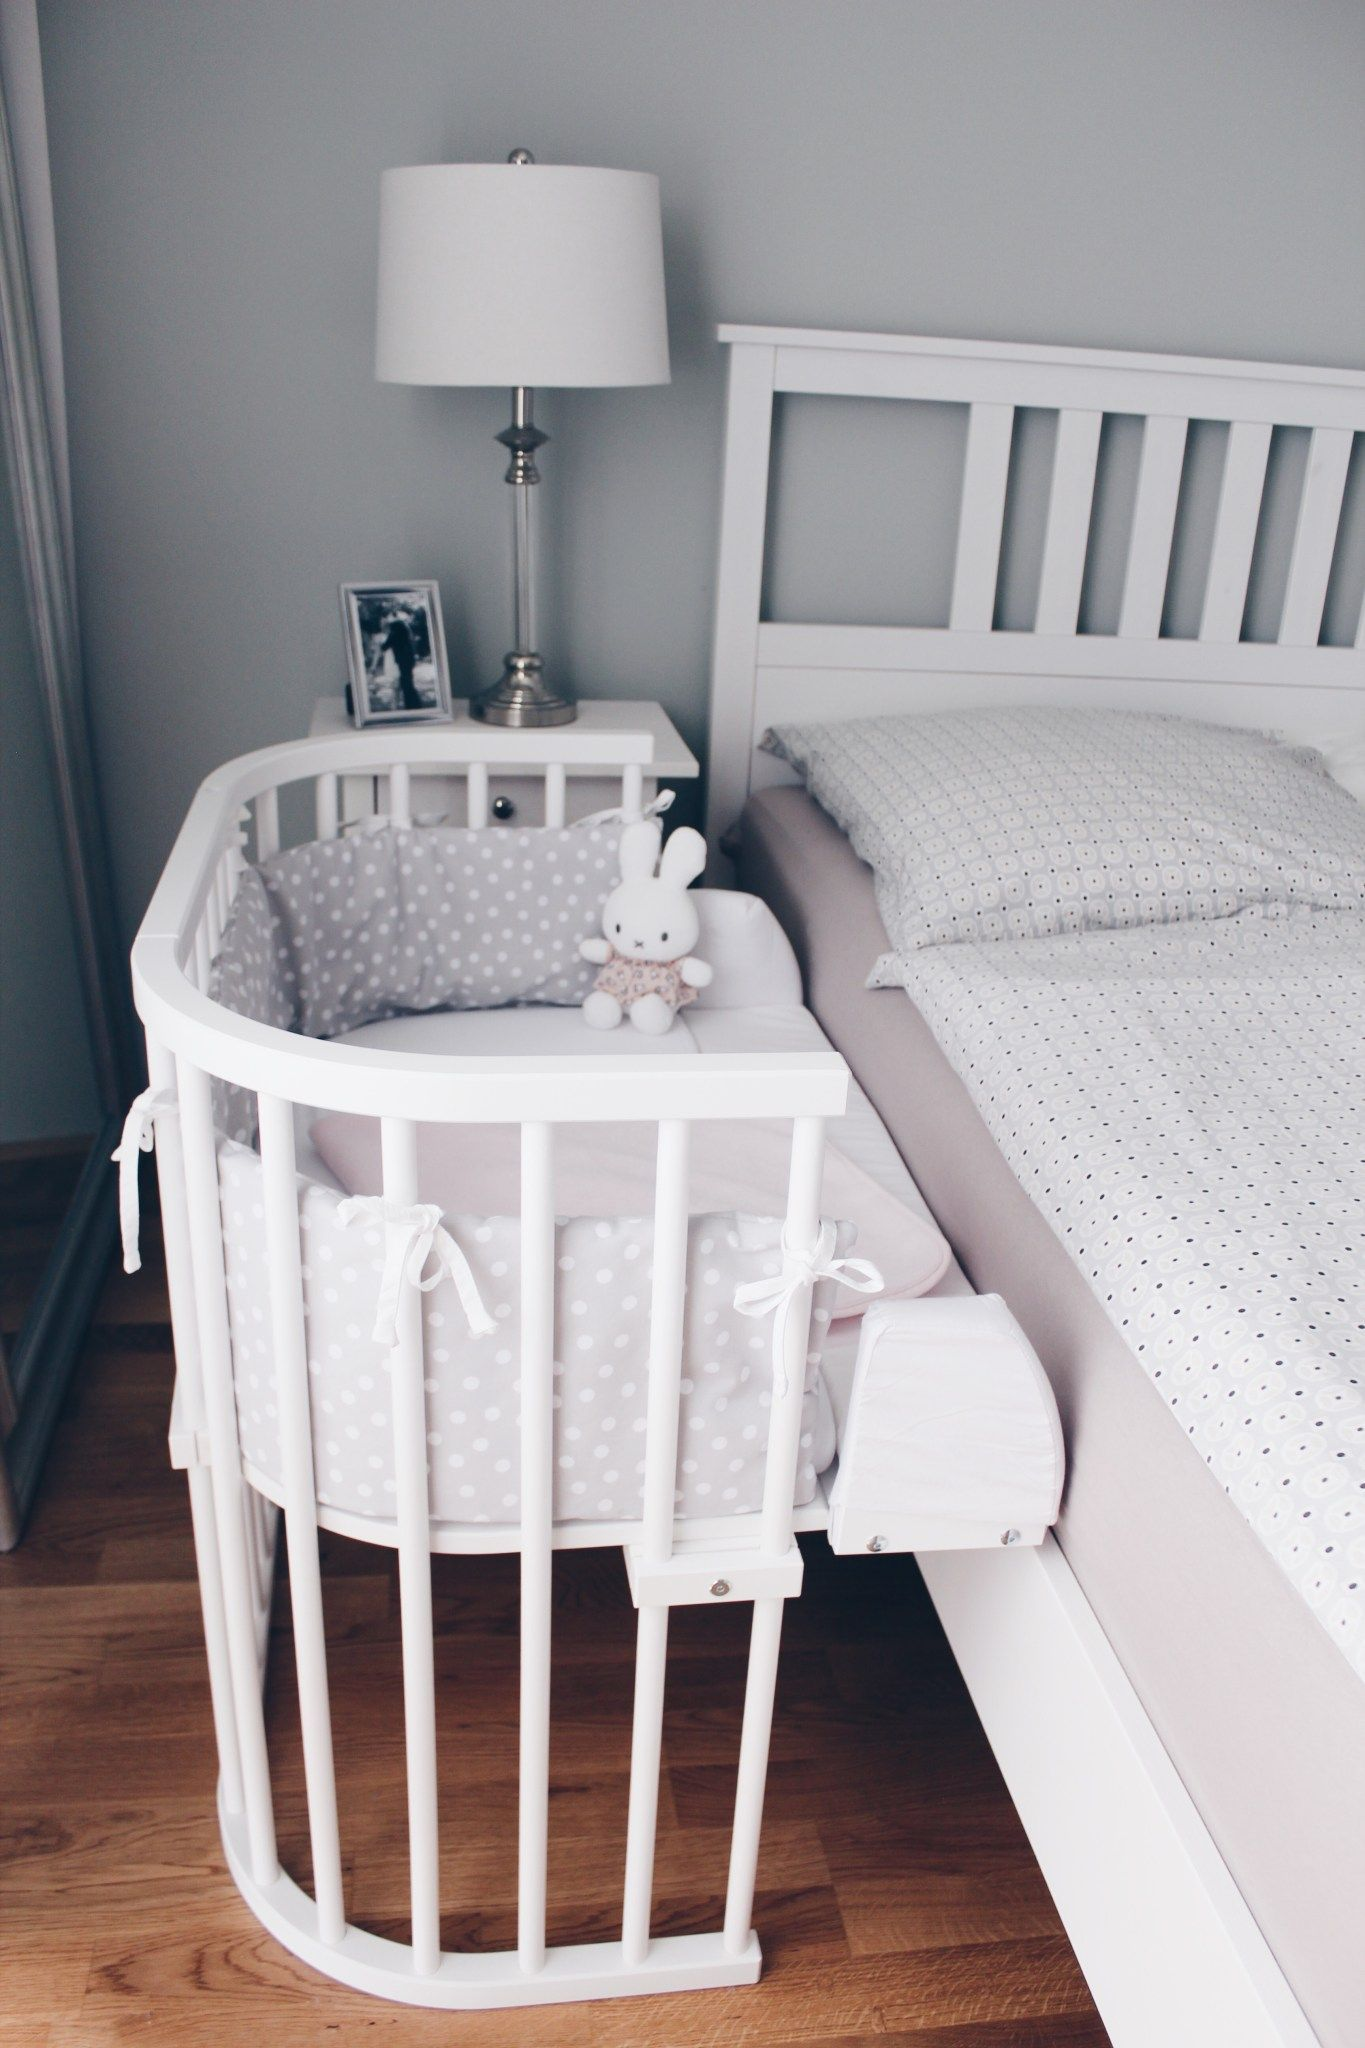 bd72eecfb √ 27 Cute Baby Room Ideas  Nursery Decor for Boy